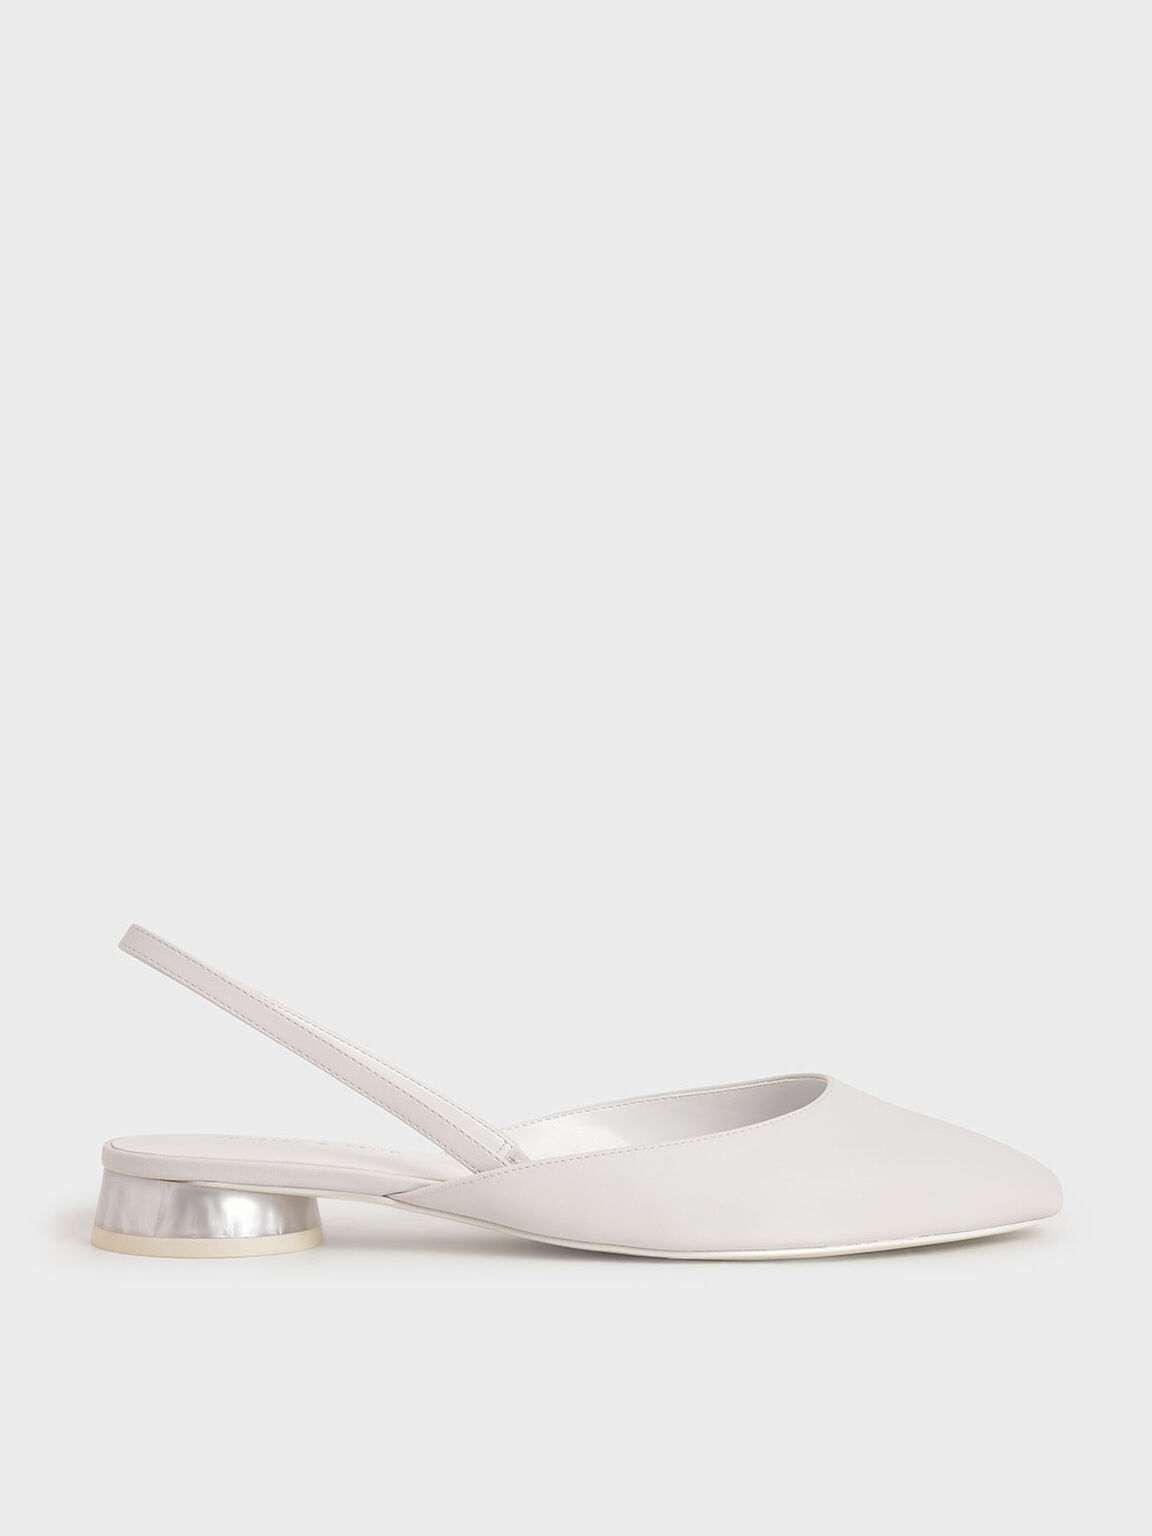 Cylindrical Heel Slingback Pumps, White, hi-res